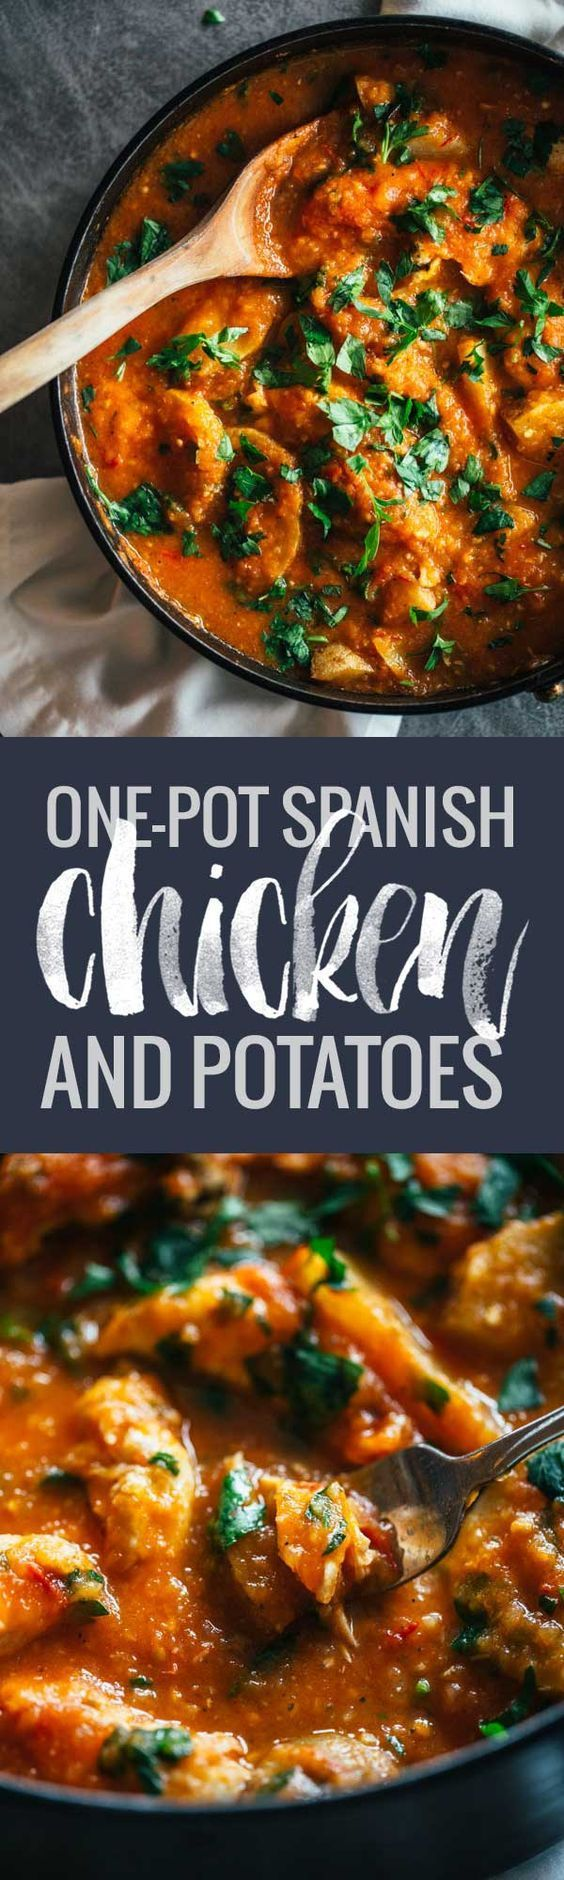 One Pot Spanish Chicken and Potatoes Recipe plus 24 more of the most pinned one pot meals